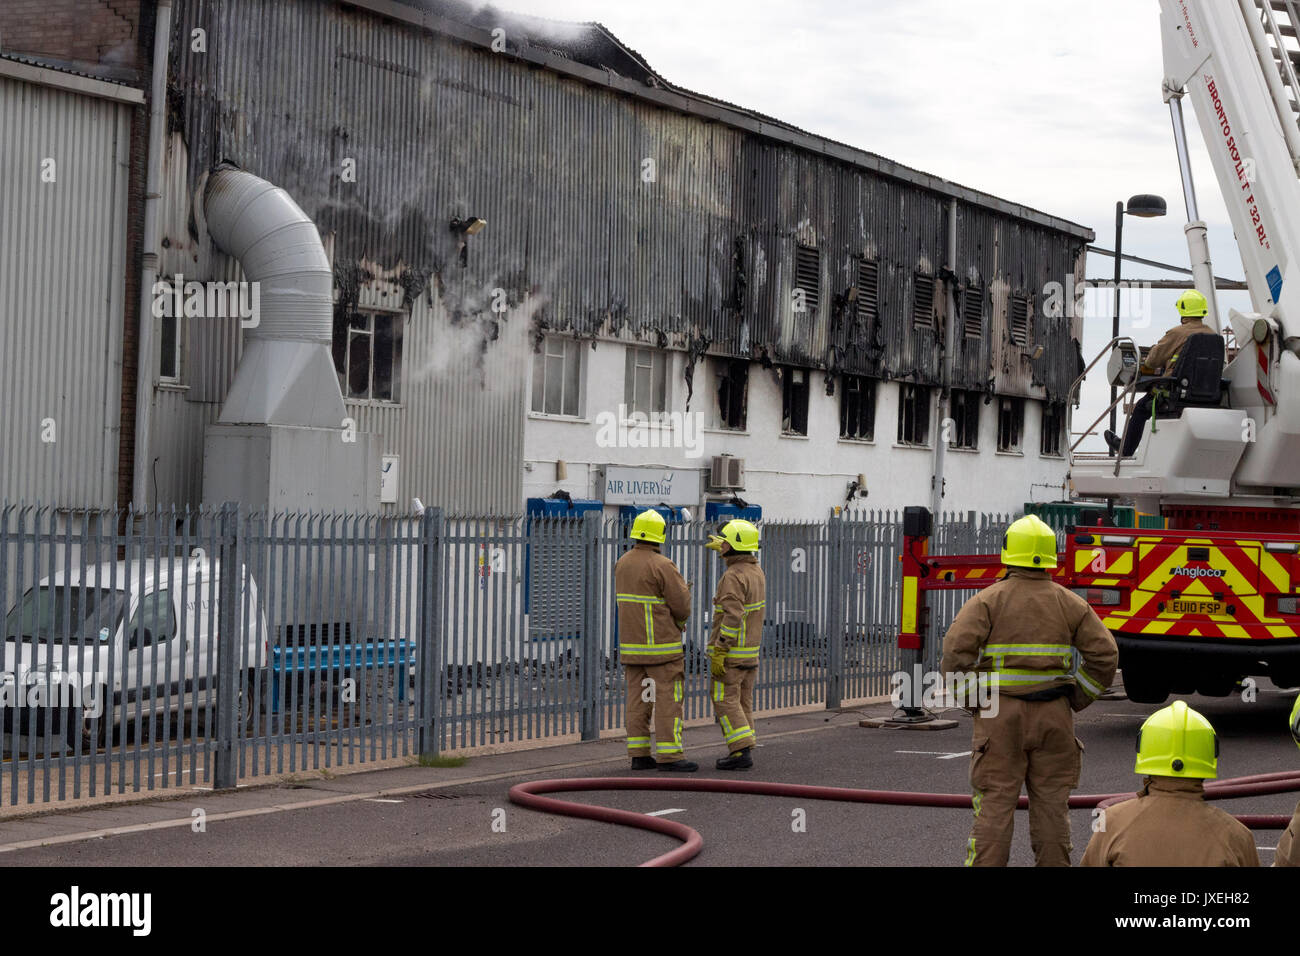 Southend on sea, Essex, UK. 16th August 2017. Airport Fire. A large fire has broken out at the Air Livery hangar based at London Southend Airport at around 11:00 AM Fire crews were quick to respond to the incident. Credit: Darren Attersley/Alamy Live News Stock Photo